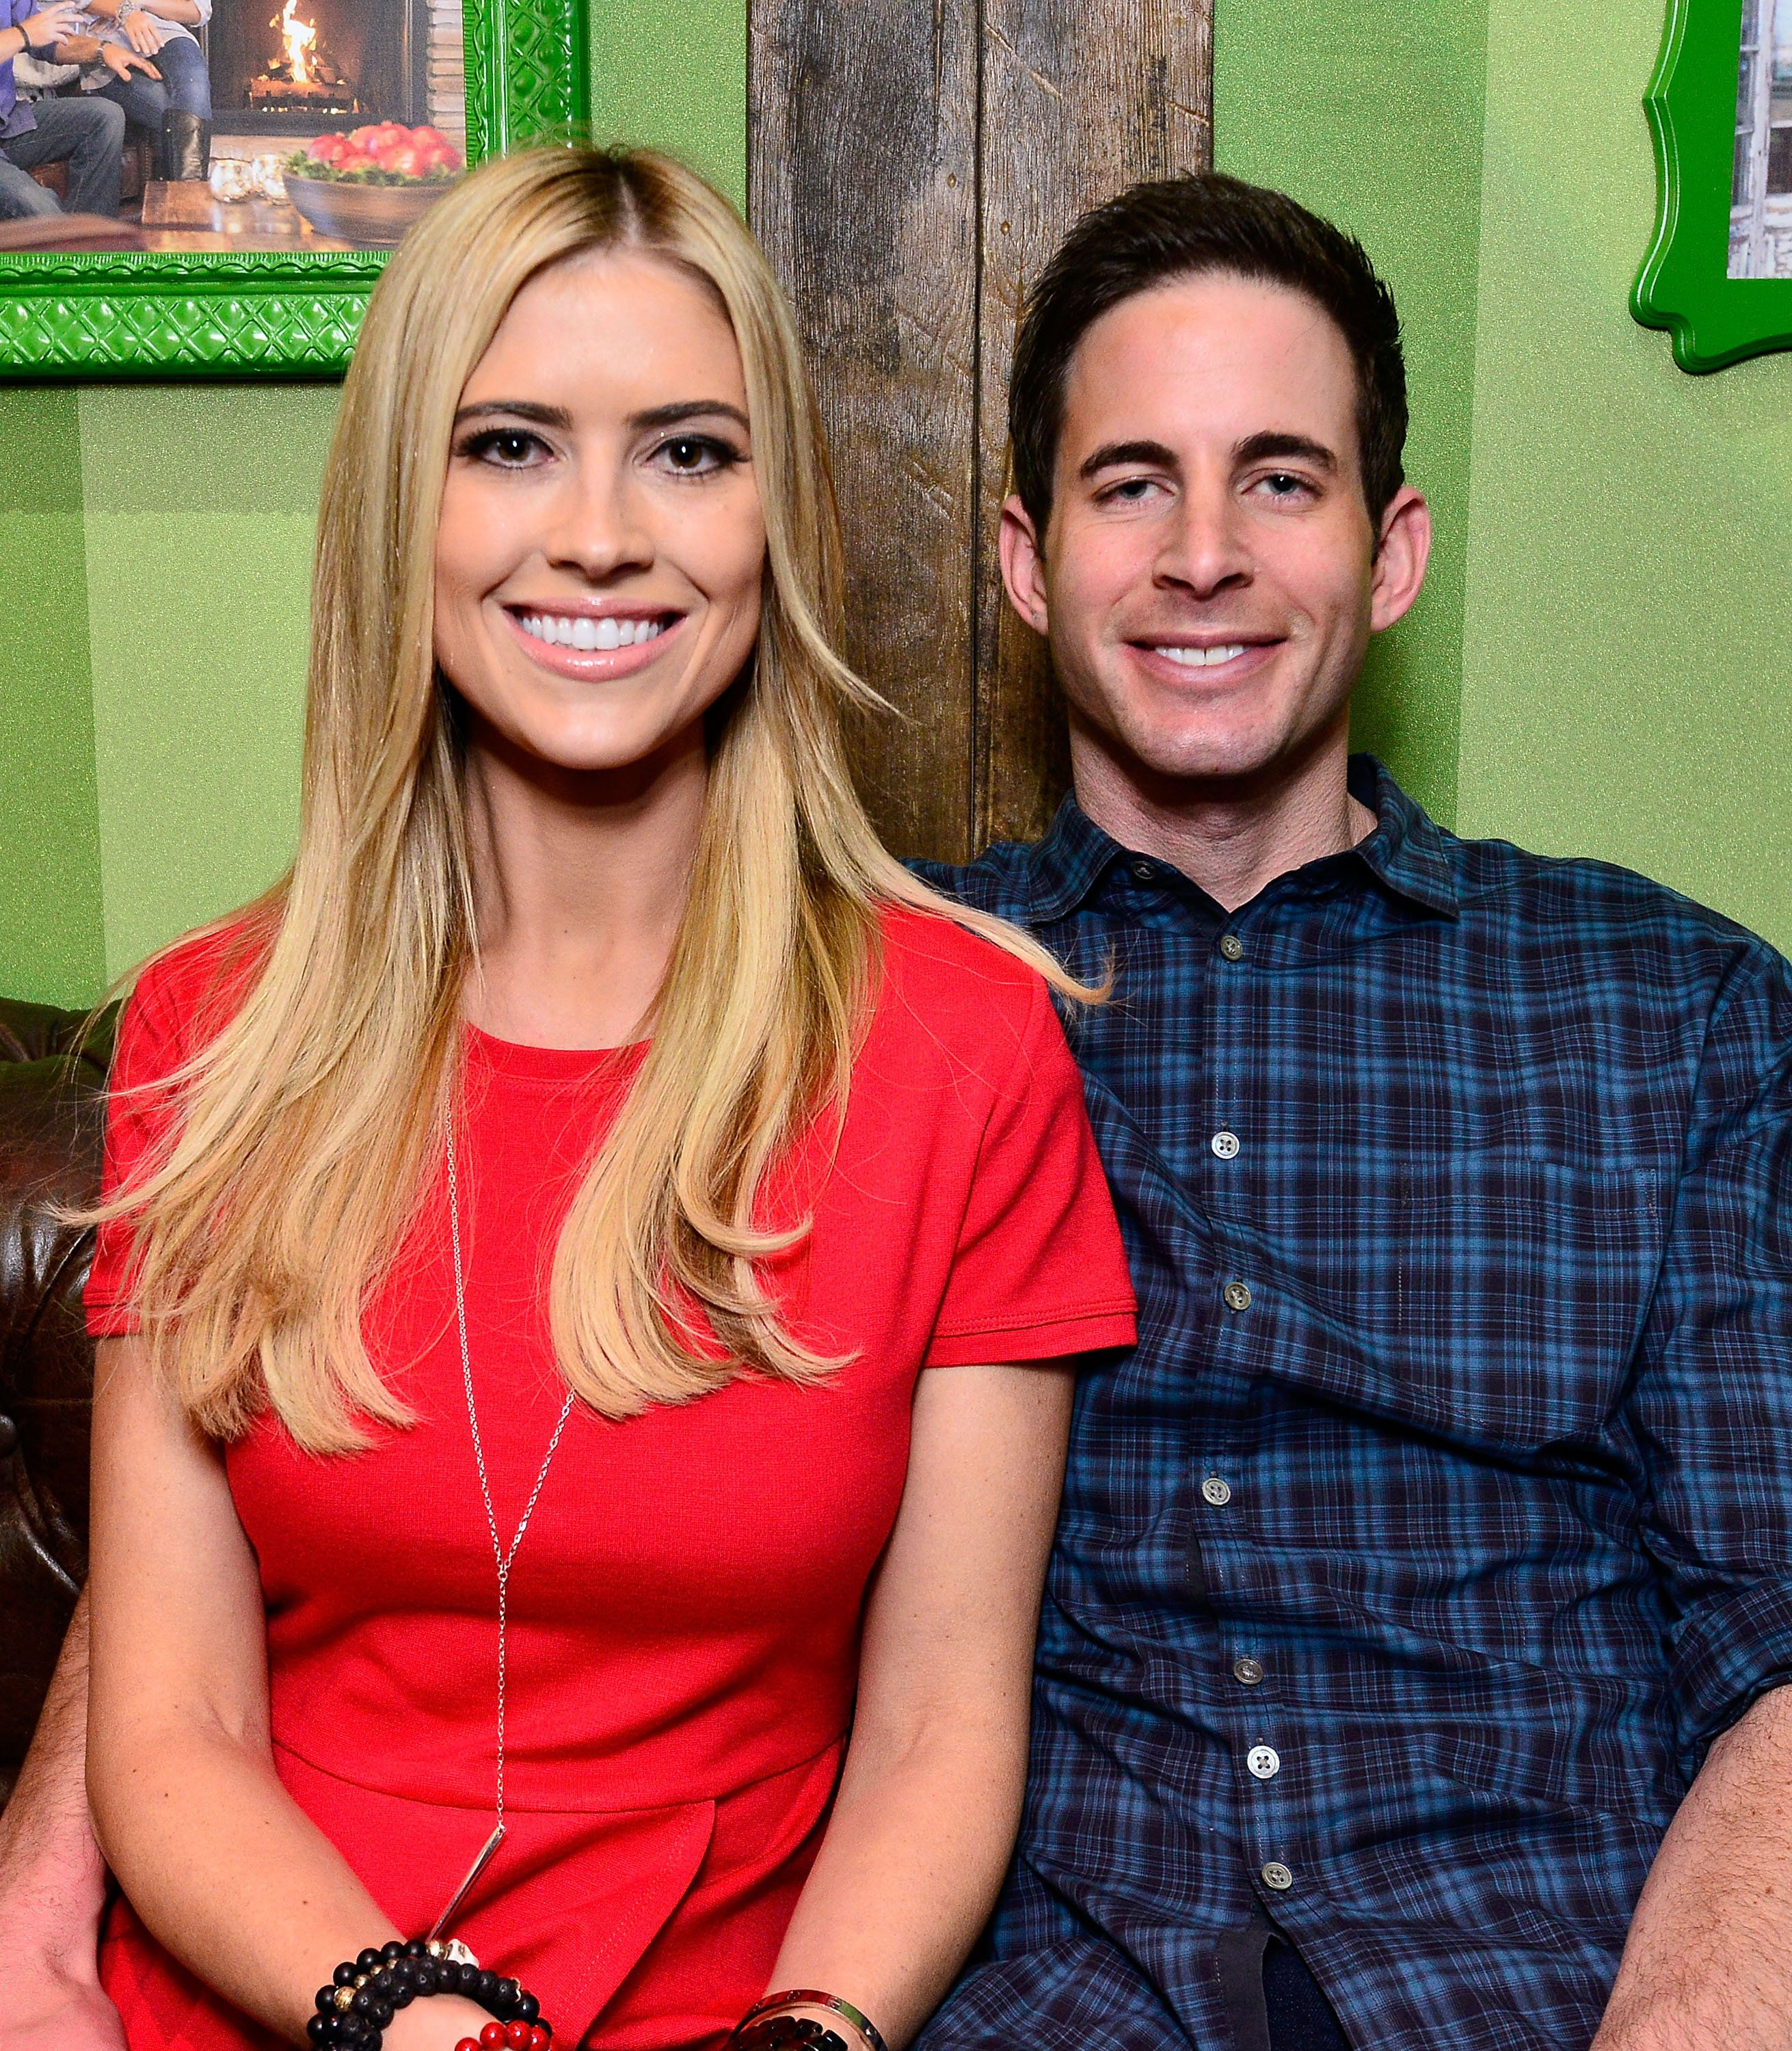 LAKEWOOD, CA - DECEMBER 13:  Tarek and Christina El Moussa, hosts of HGTV's hit show Flip or Flop, visited the HGTV Santa HQ at Lakewood Center. The reality stars visited with Santa, toured the new digital Santa headquarters and celebrated the holidays with fans on December 13, 2014 in Lakewood, California.  (Photo by Jerod Harris/Getty Images for Lakewood Center)